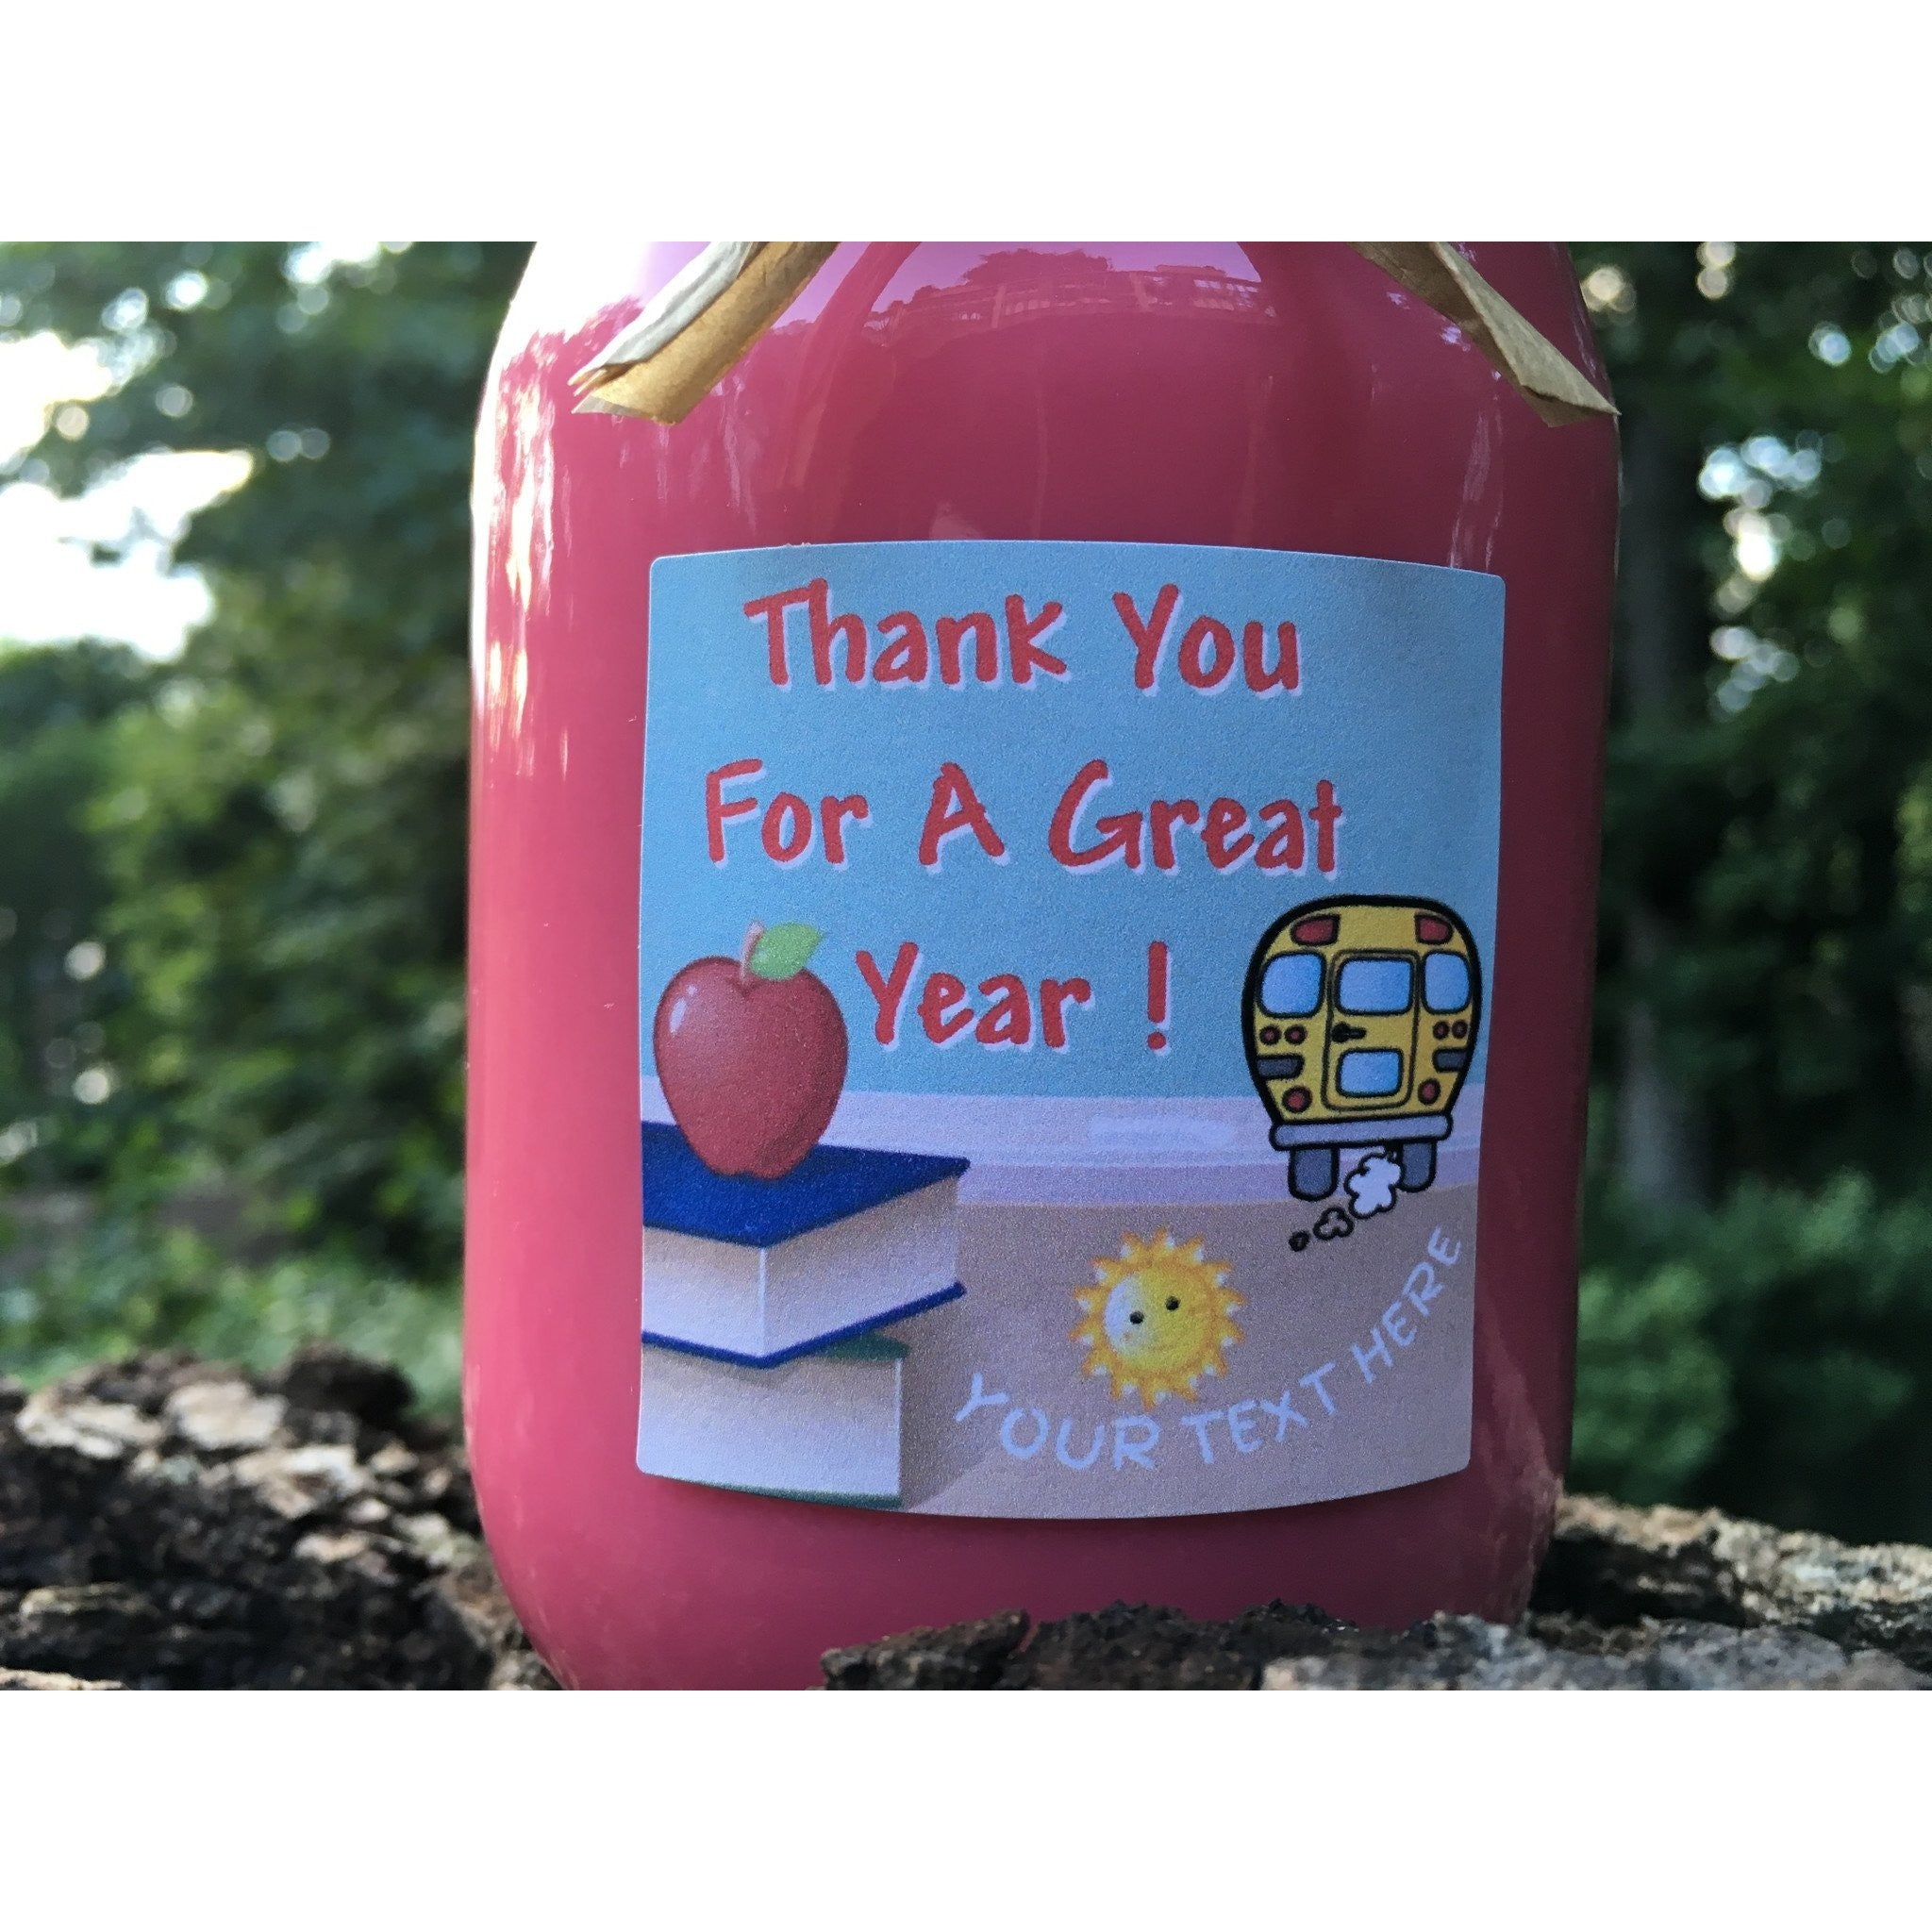 End Of School Thank You Teachers Natural Hand Poured Soy Candles & Melts -  - Bella-Mia Naturals All Natural Soy Candles & Lip Balms - 2